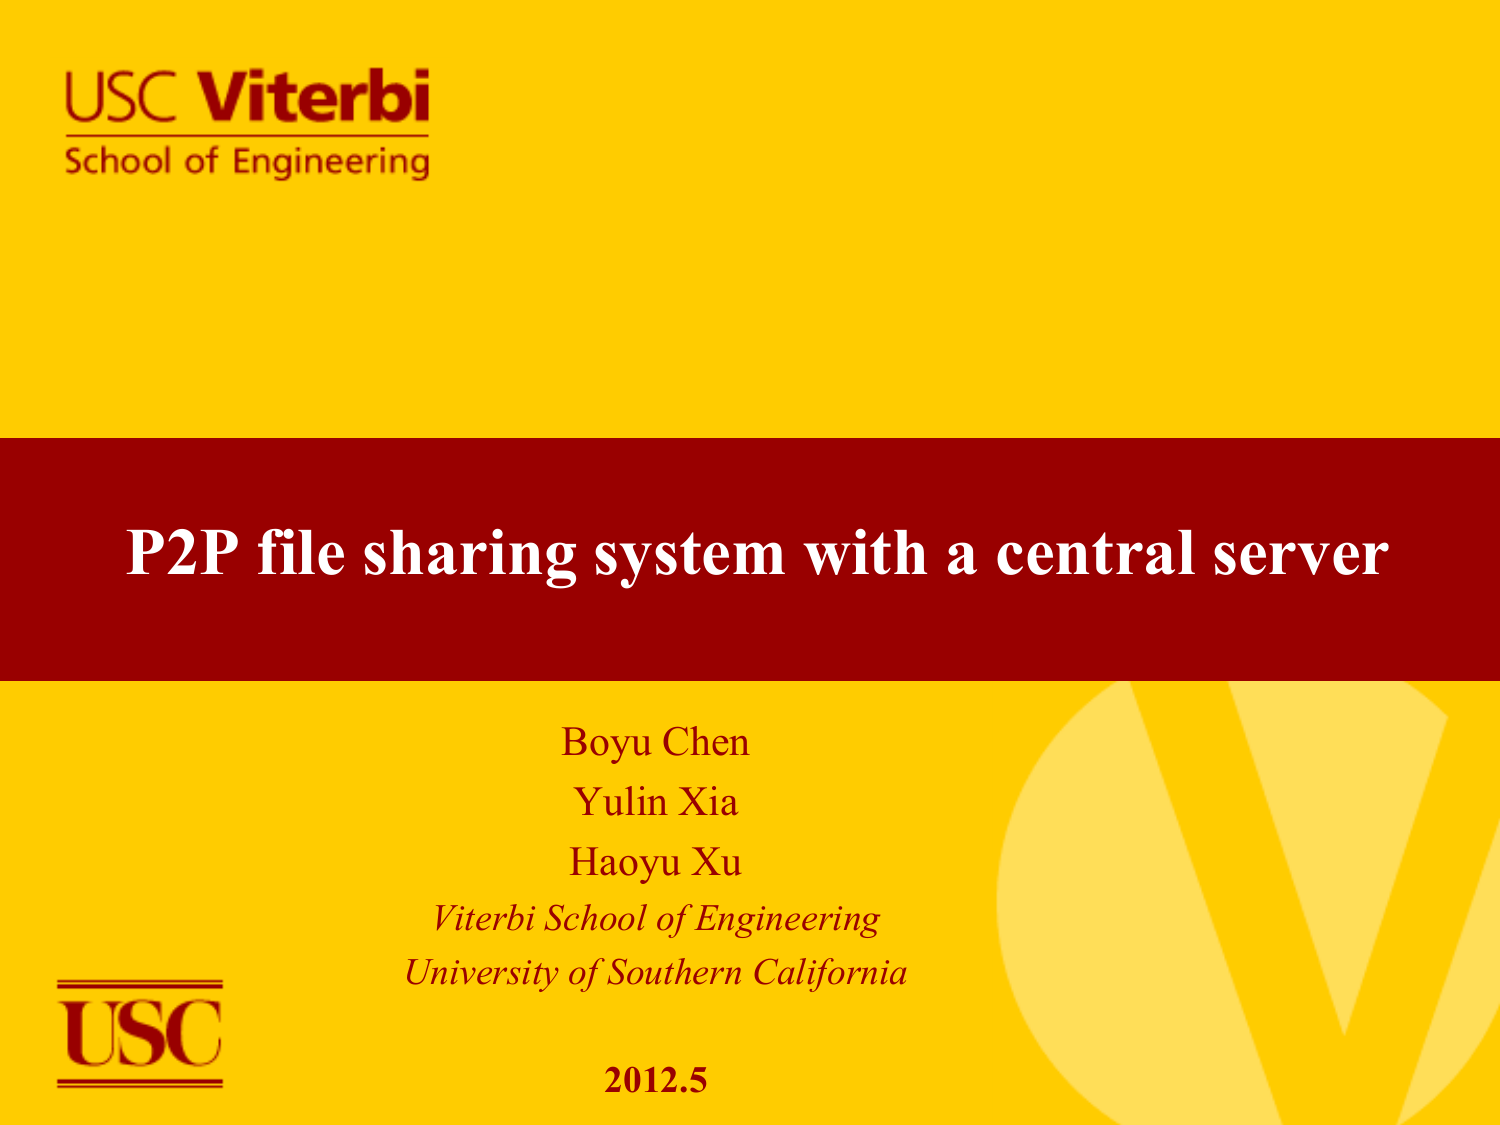 ppt slides for the final - University of Southern California